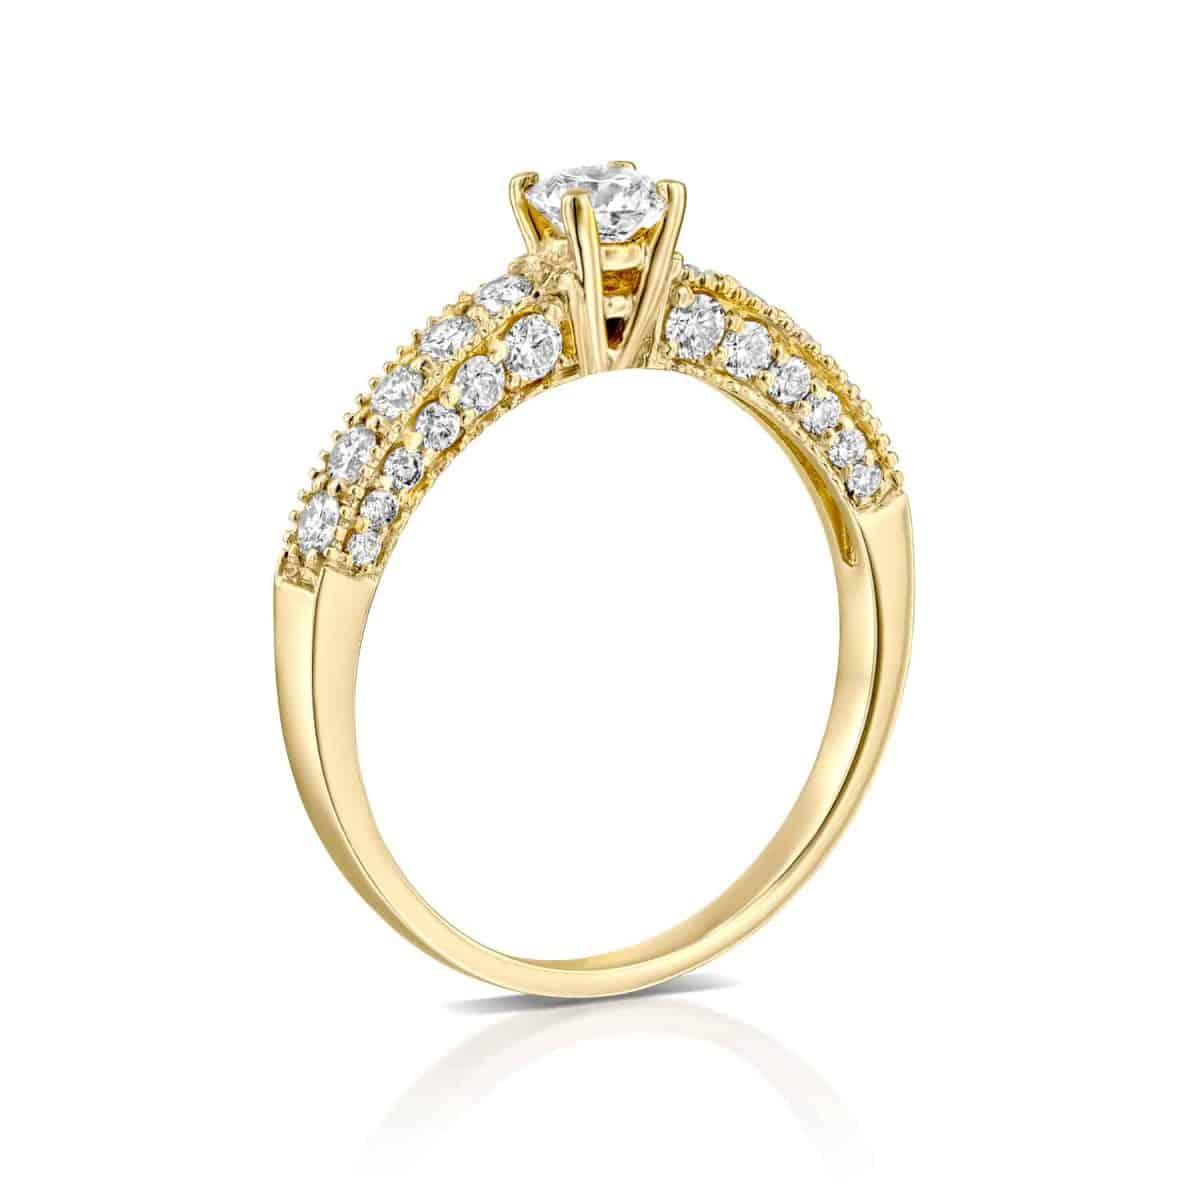 Vintage - Yellow Gold Lab Grown Diamond Engagement Ring 0.90ct. - standing